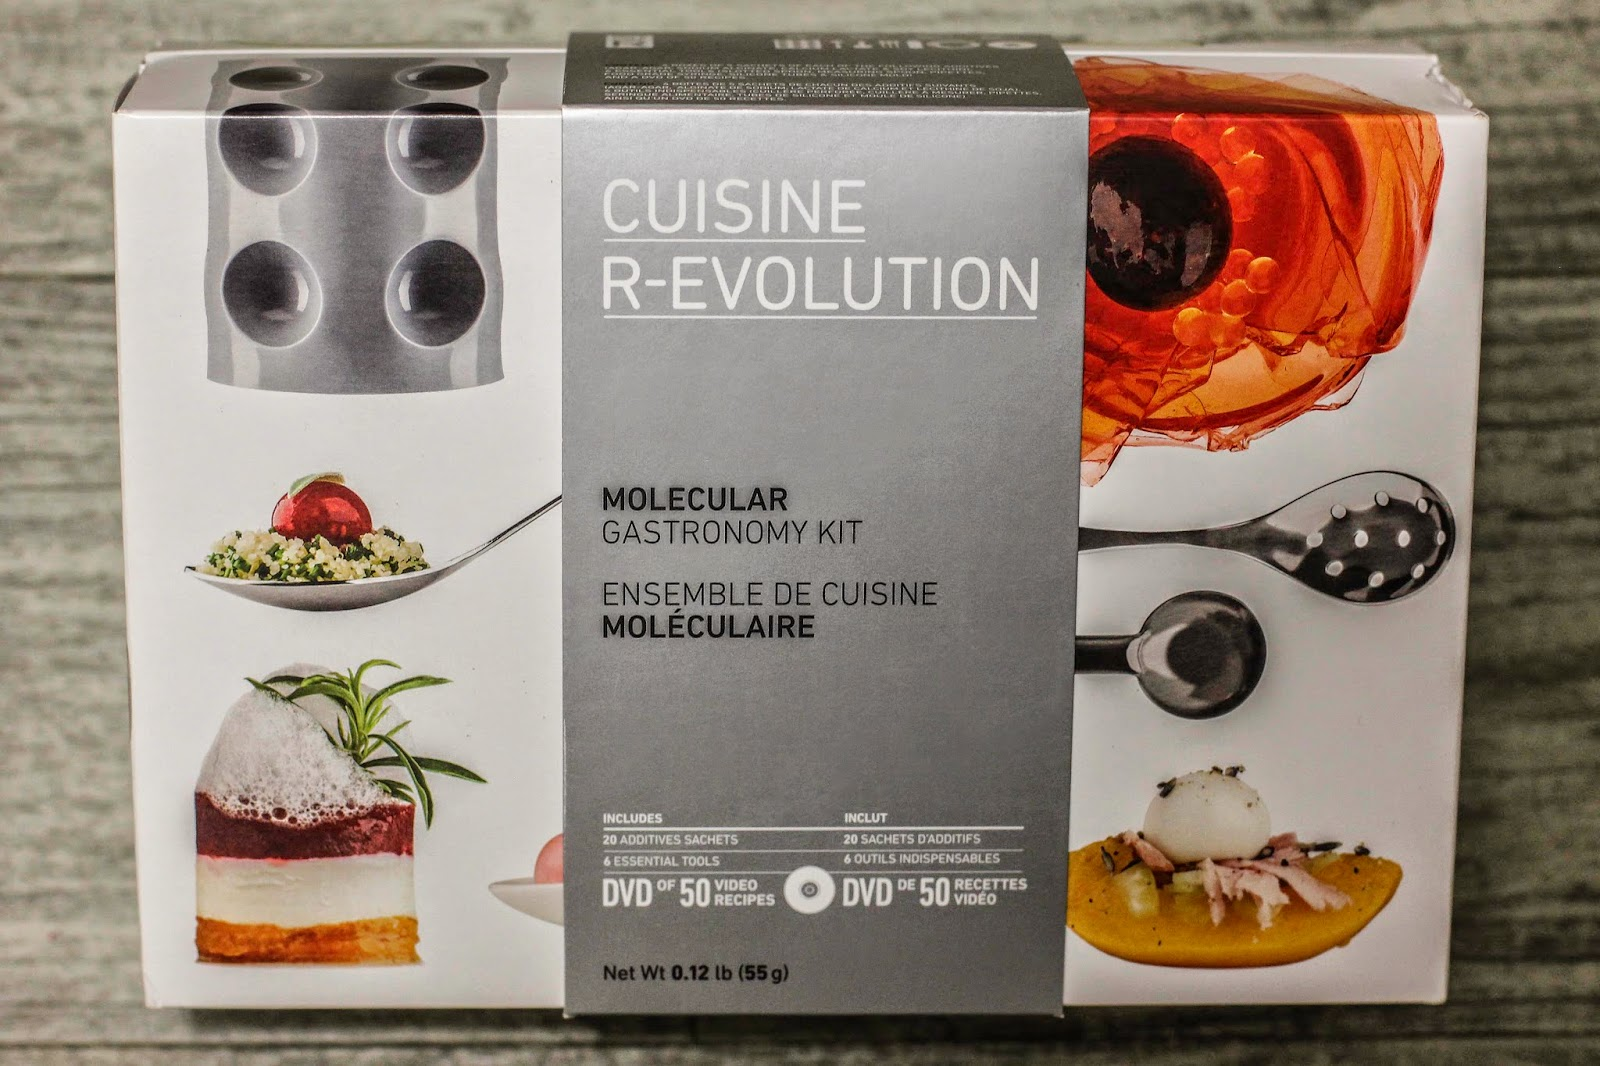 Cooking with Jax: 12 Days of GIveaways: Day 4 - Molecular Gastronomy ...